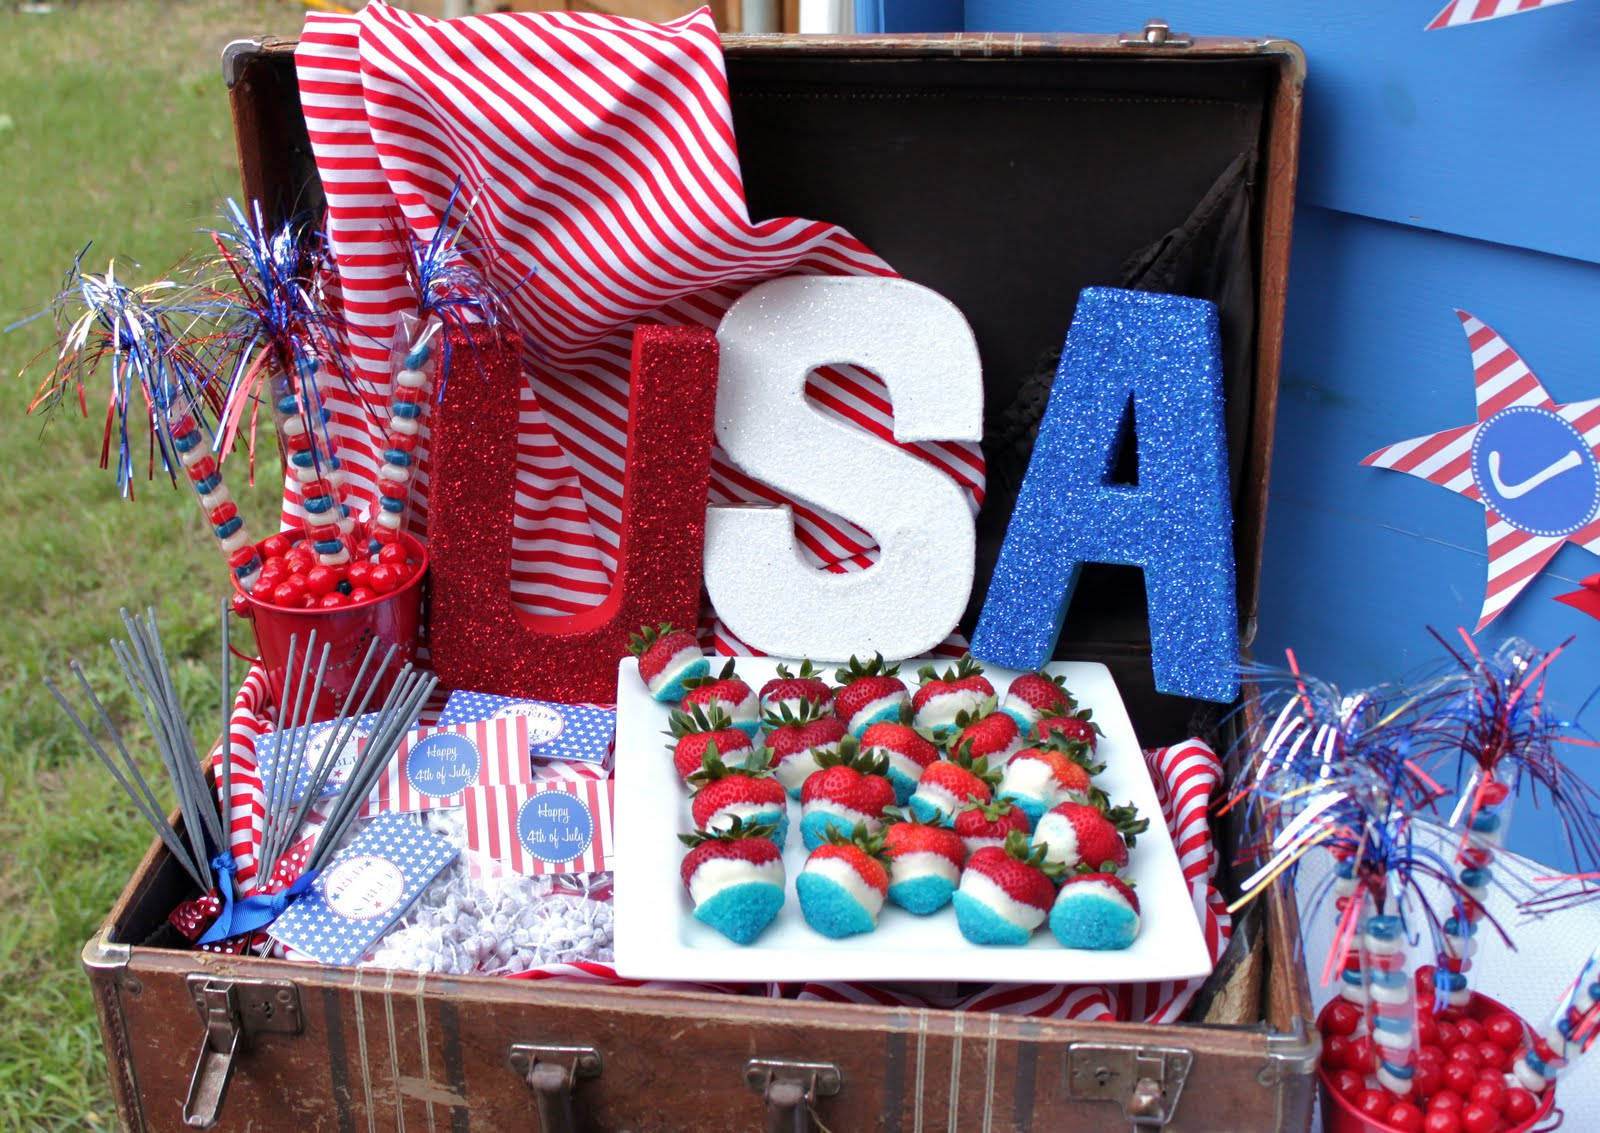 4th of July BBQ - Giggles Galore Patriotic Backyard Bbq Decorating Ideas Html on backyard barbecue decor ideas, backyard movie diy, backyard bbq food table decorating, backyard bbq wedding ideas, backyard barbeque pool party,